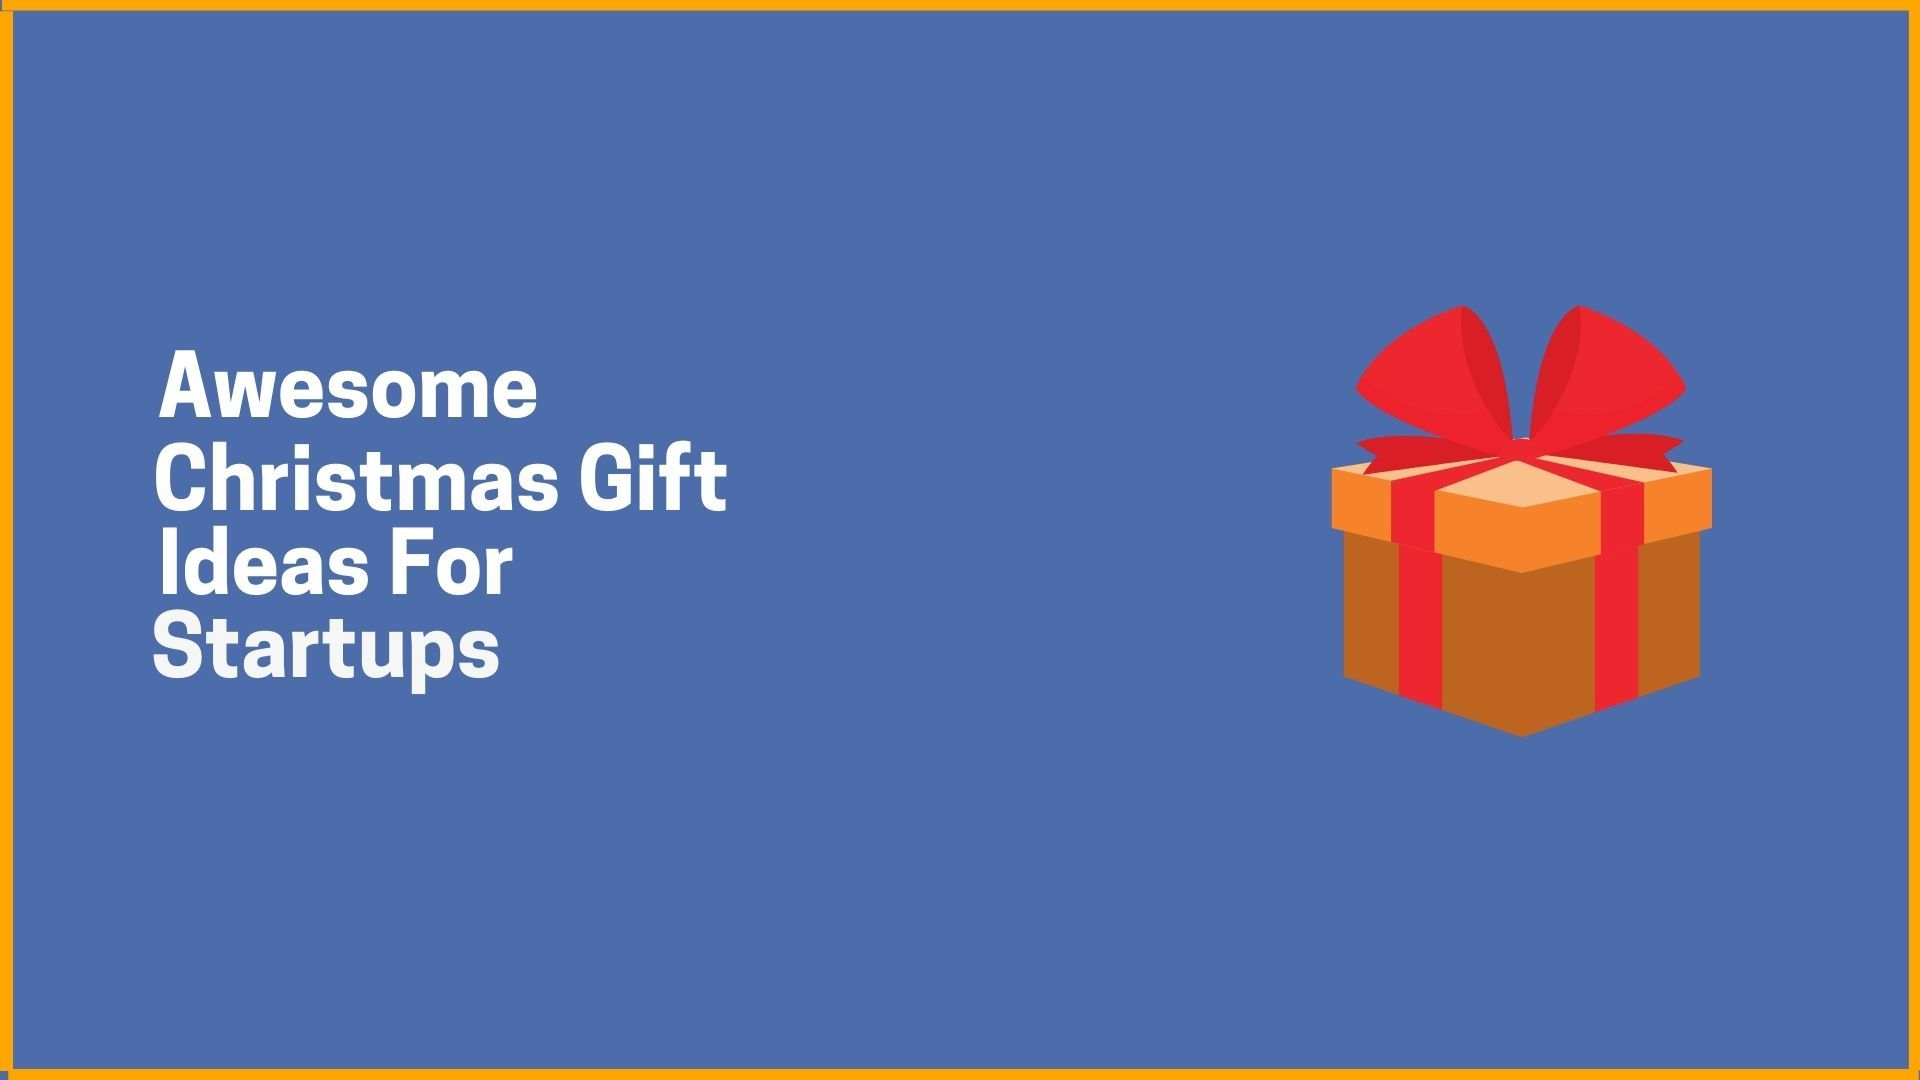 Awesome Christmas Gift Ideas For Startups